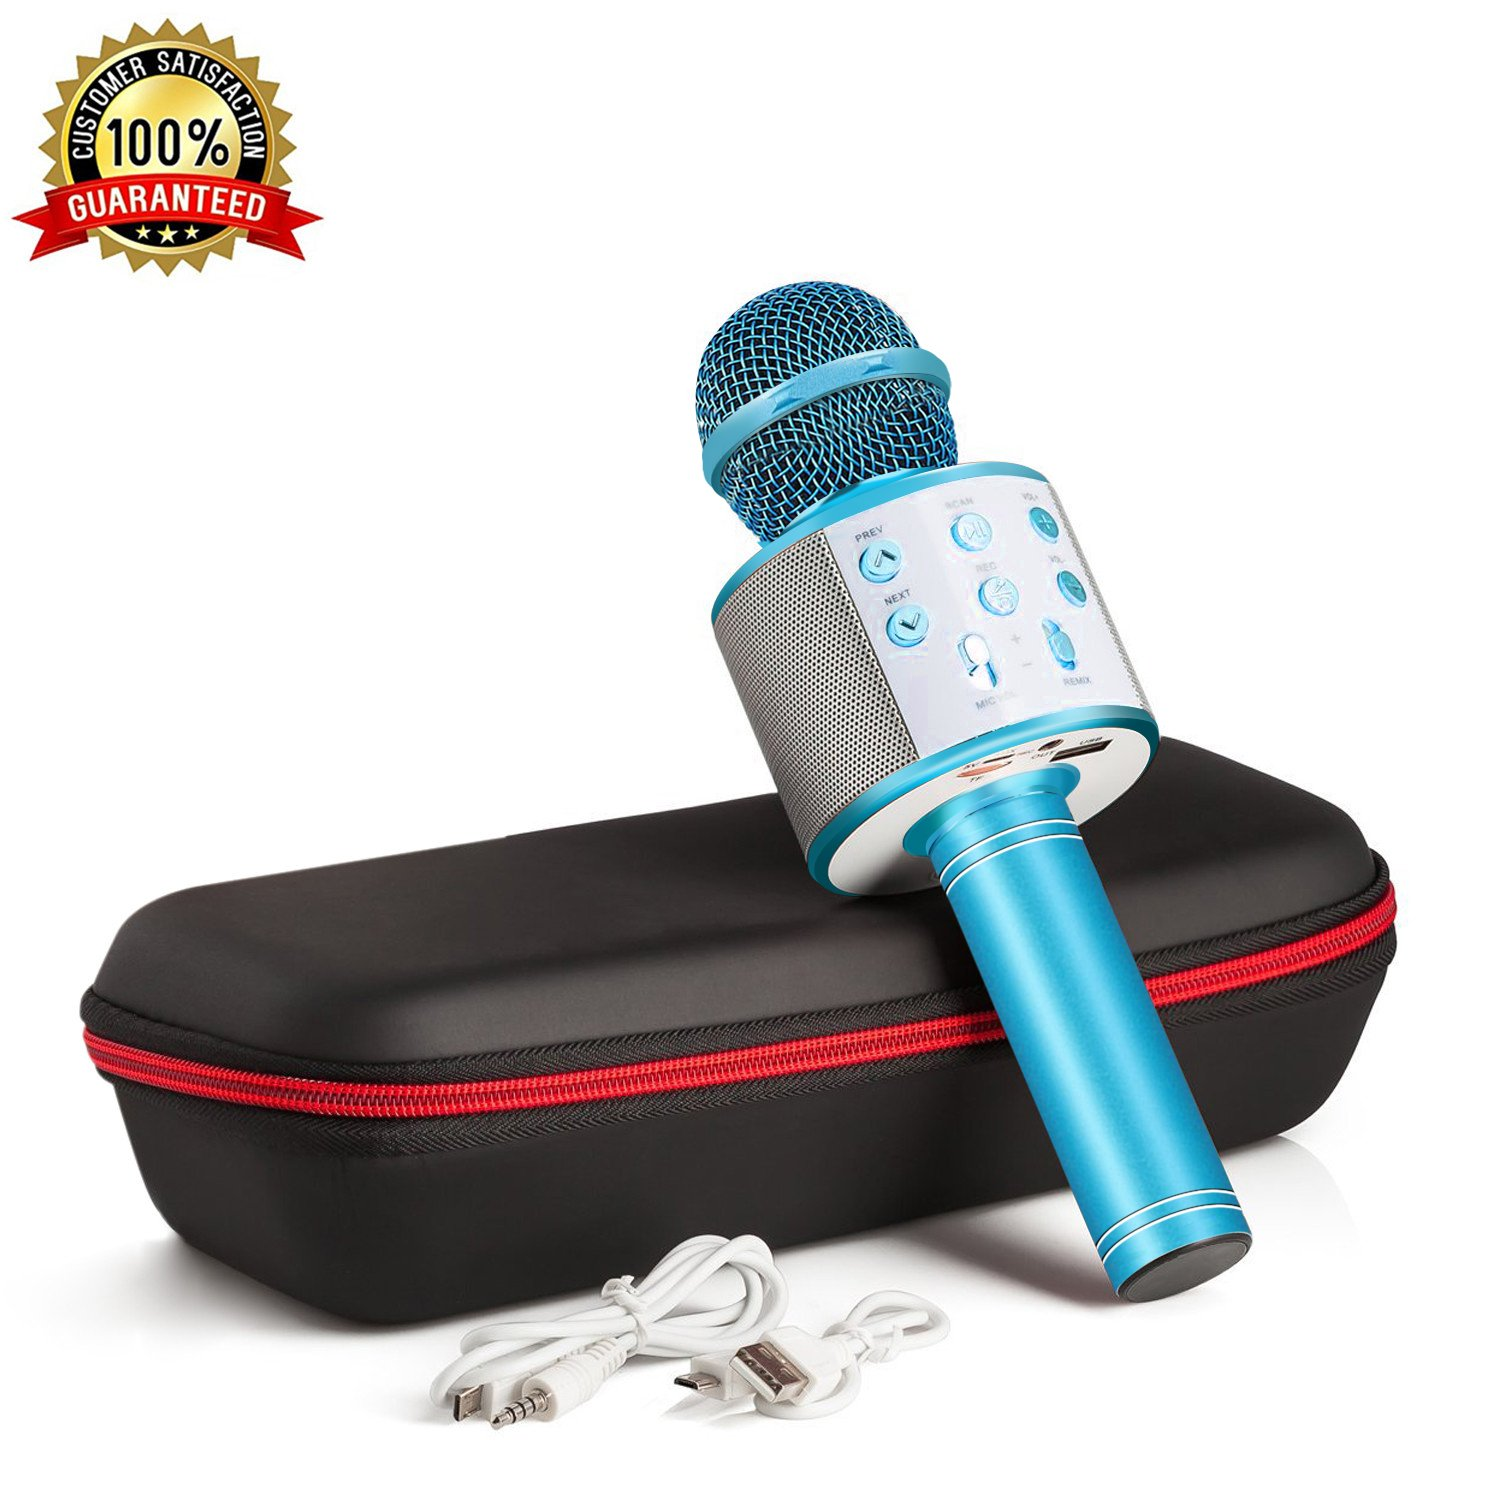 Karaoke Microphone Wireless With Bluetooth Speaker - Instagram 5000+Likes iPhone Android PC Smartphone Portable Handheld Microphone for Singing Recording Interviews or Kids Home KTV Party (Blue)